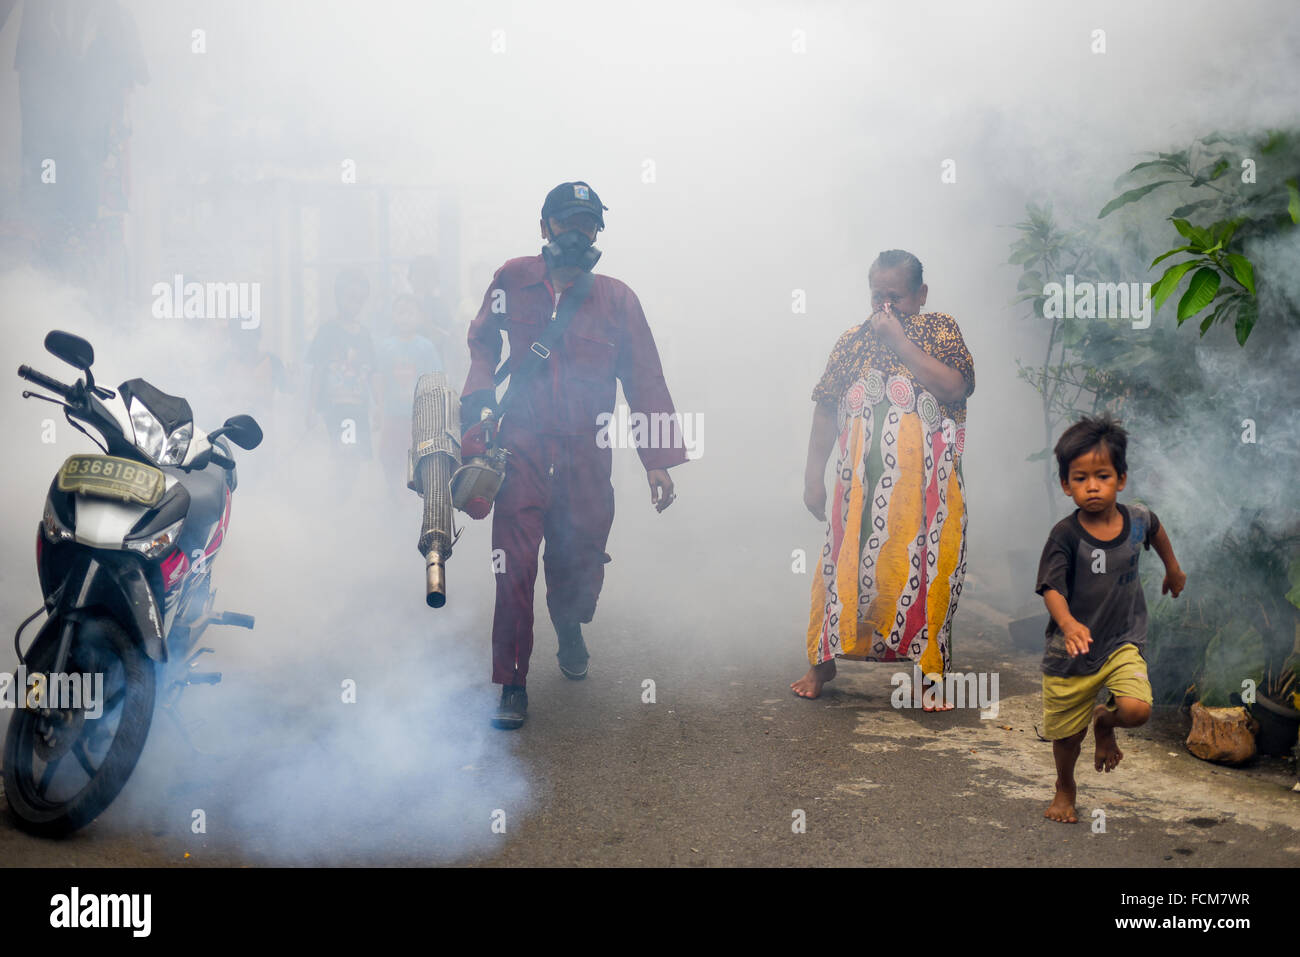 Workers from the Jakarta health office launch insecticide fogging session to fight dengue fever threat. © Reynold - Stock Image